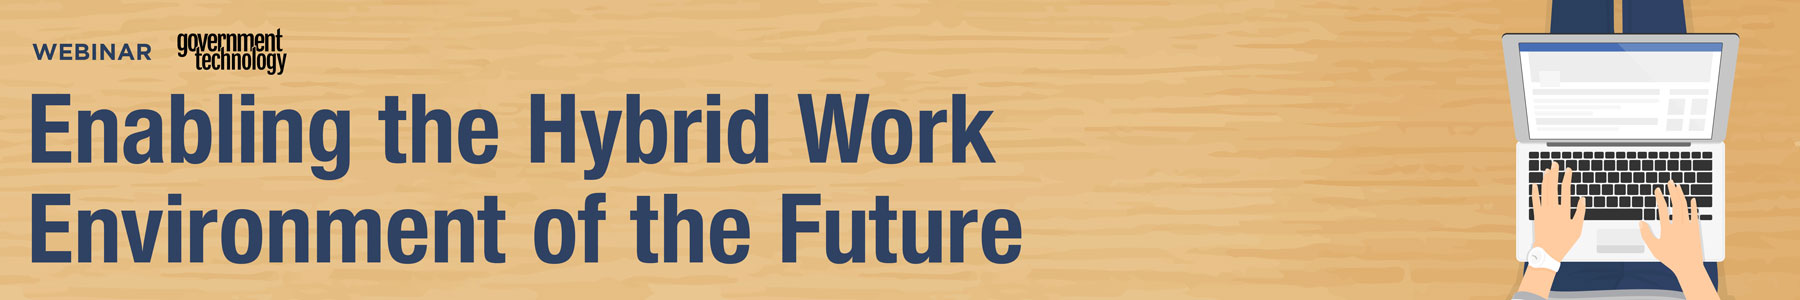 Enabling the Hybrid Work Environment of the Future